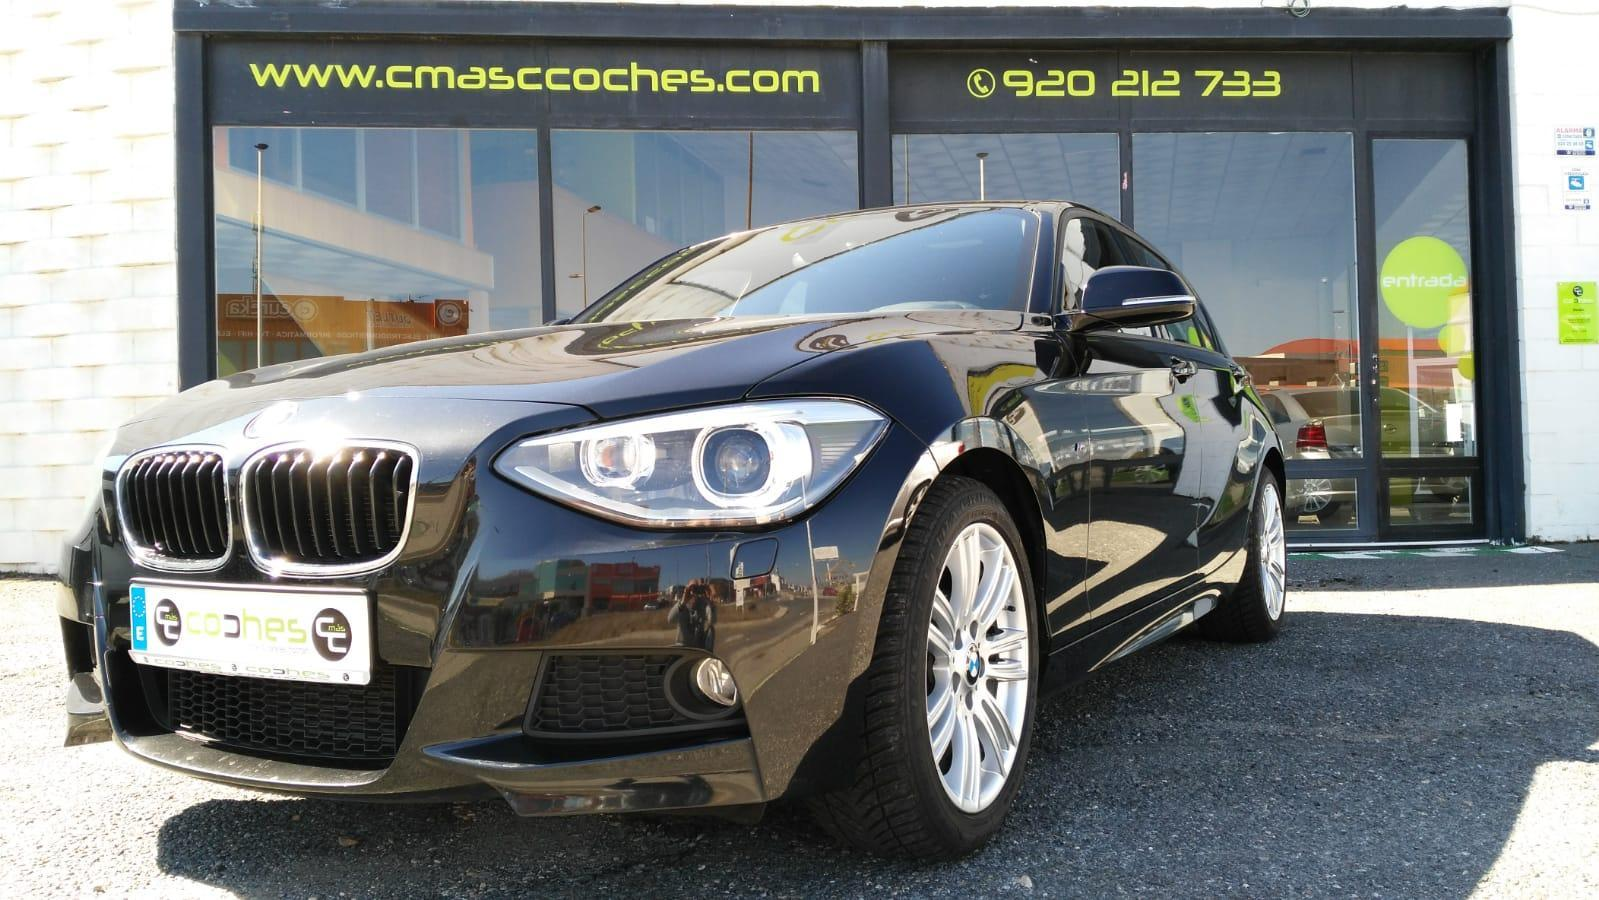 cmasc coches BMW 116i PAQUETE M